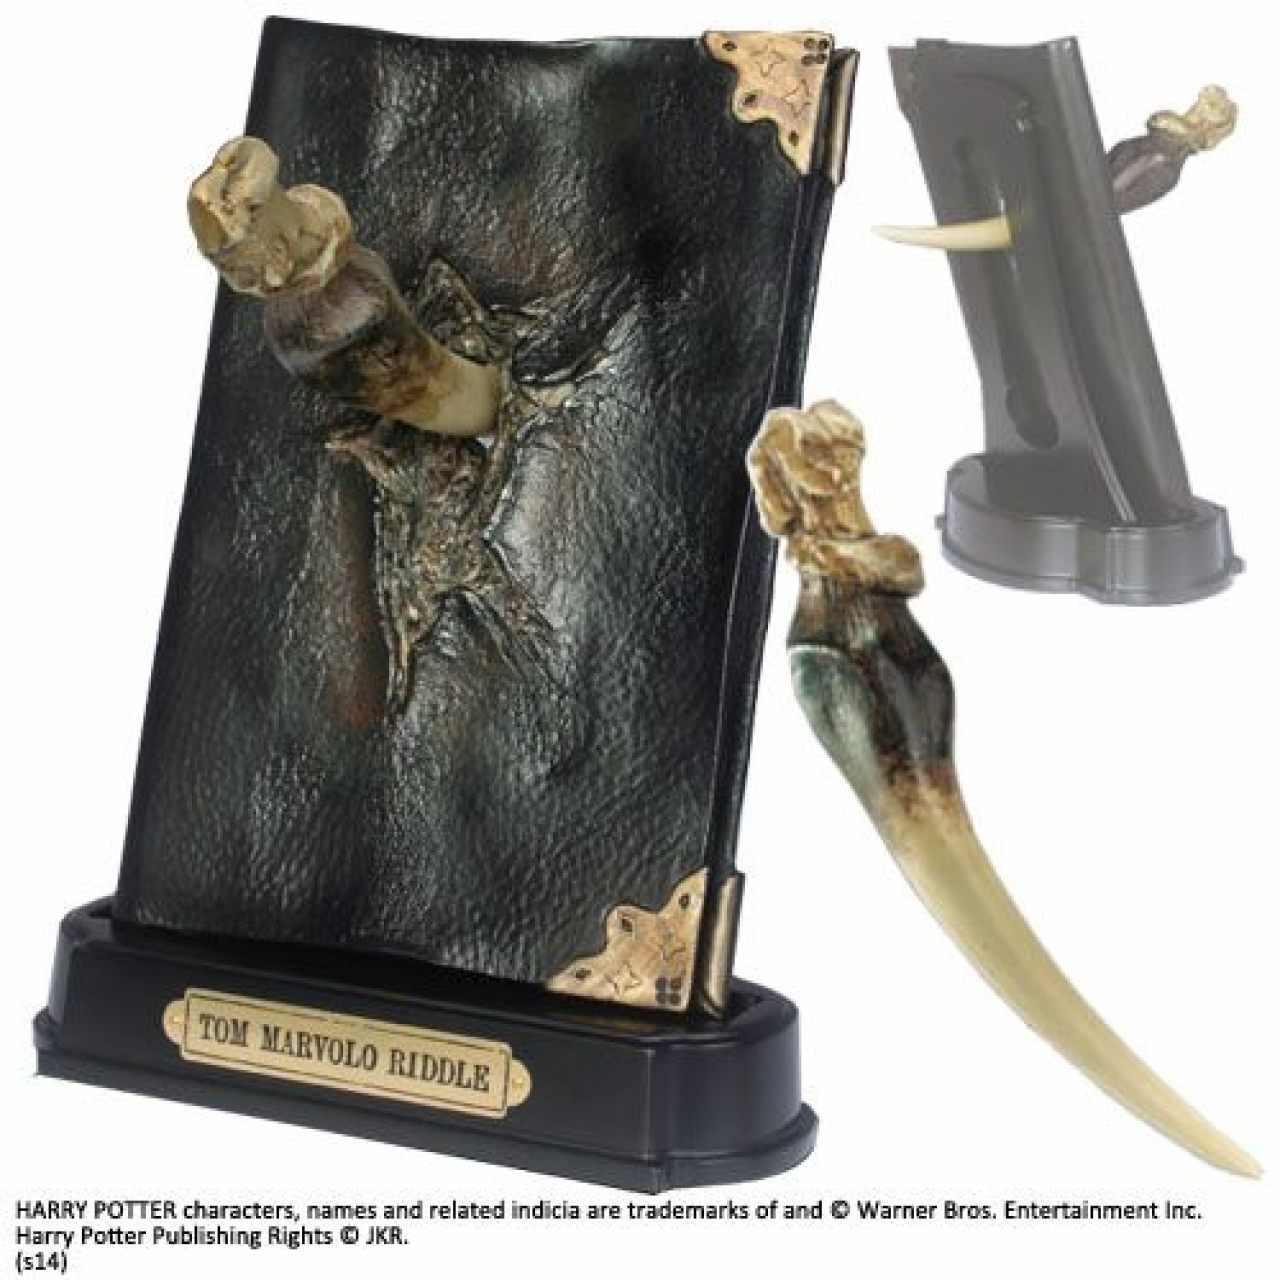 Harry Potter Replica 1/1 Basilisk Fang and Tom Riddle Diary